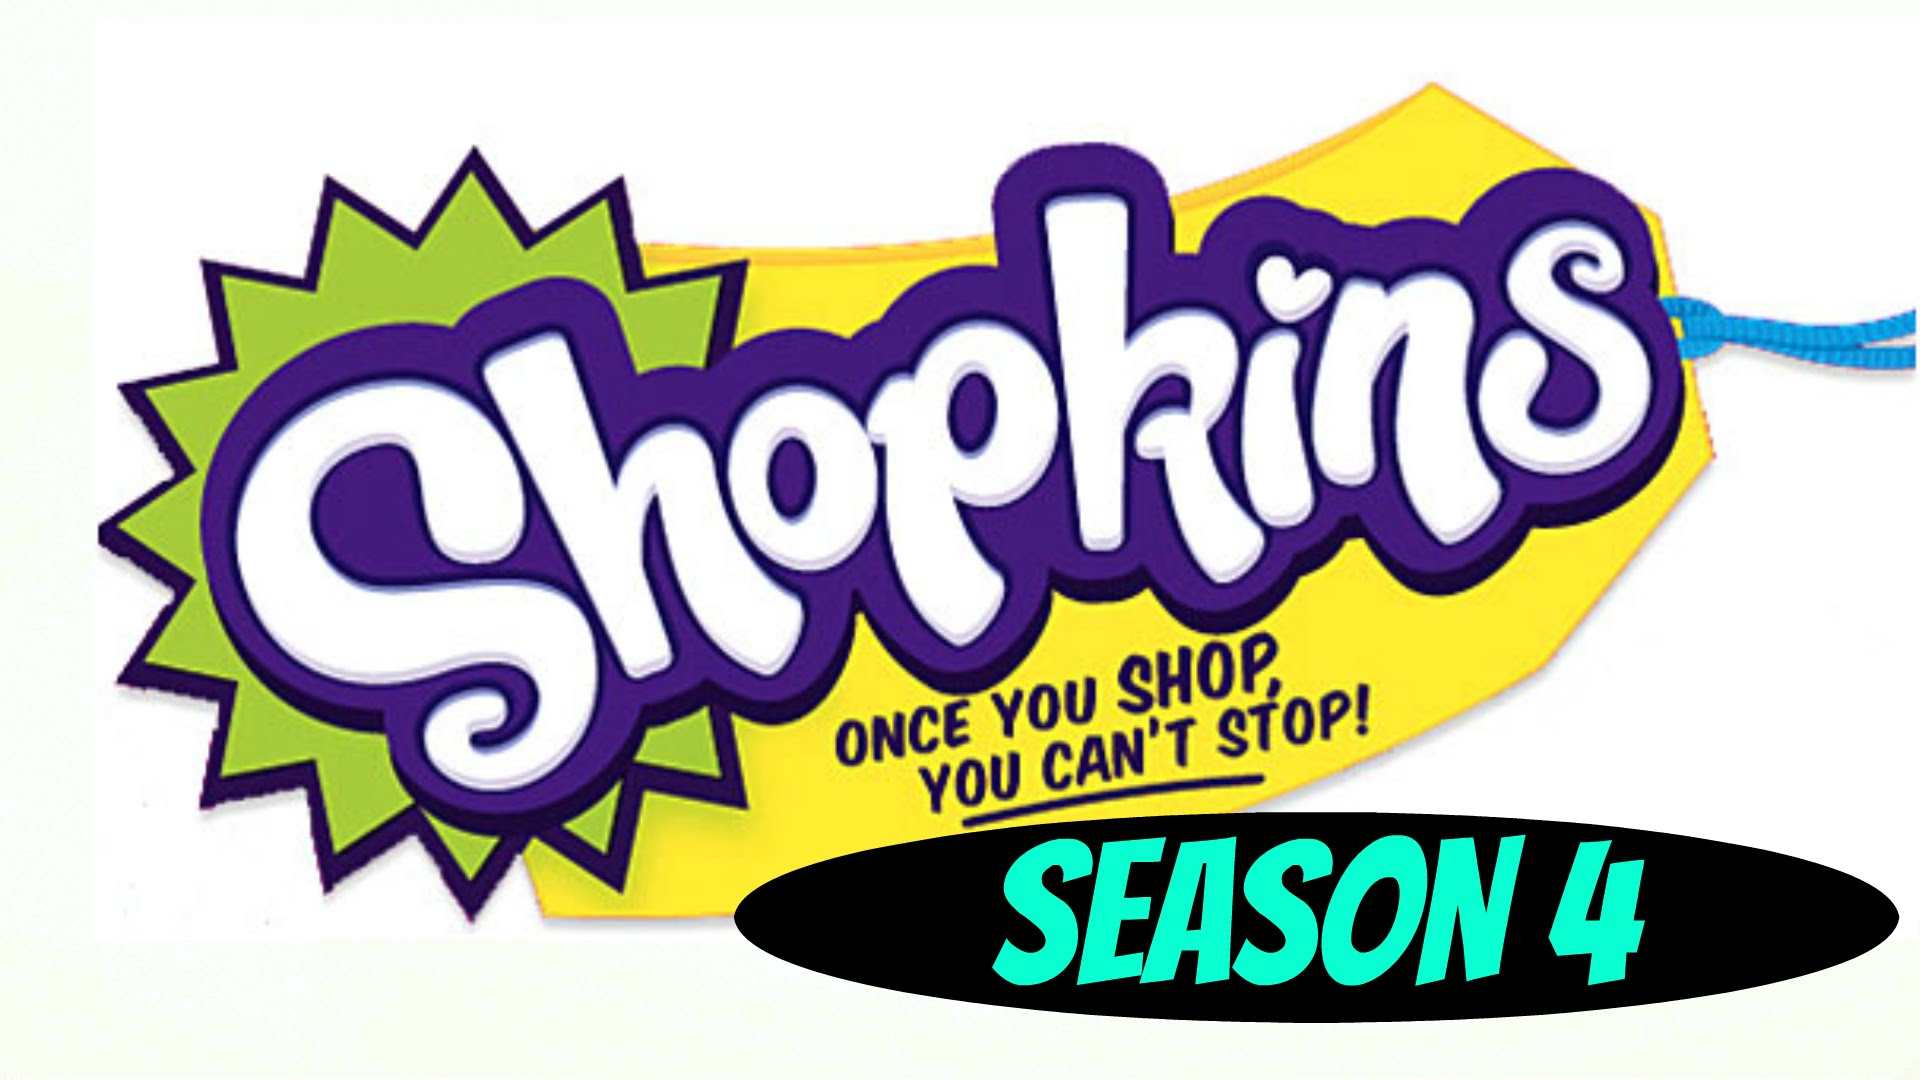 Shopkins logo clipart free vector black and white library 500 Subscribers | There Is A Season 4 Shopkins Giveaway! - YouTube vector black and white library